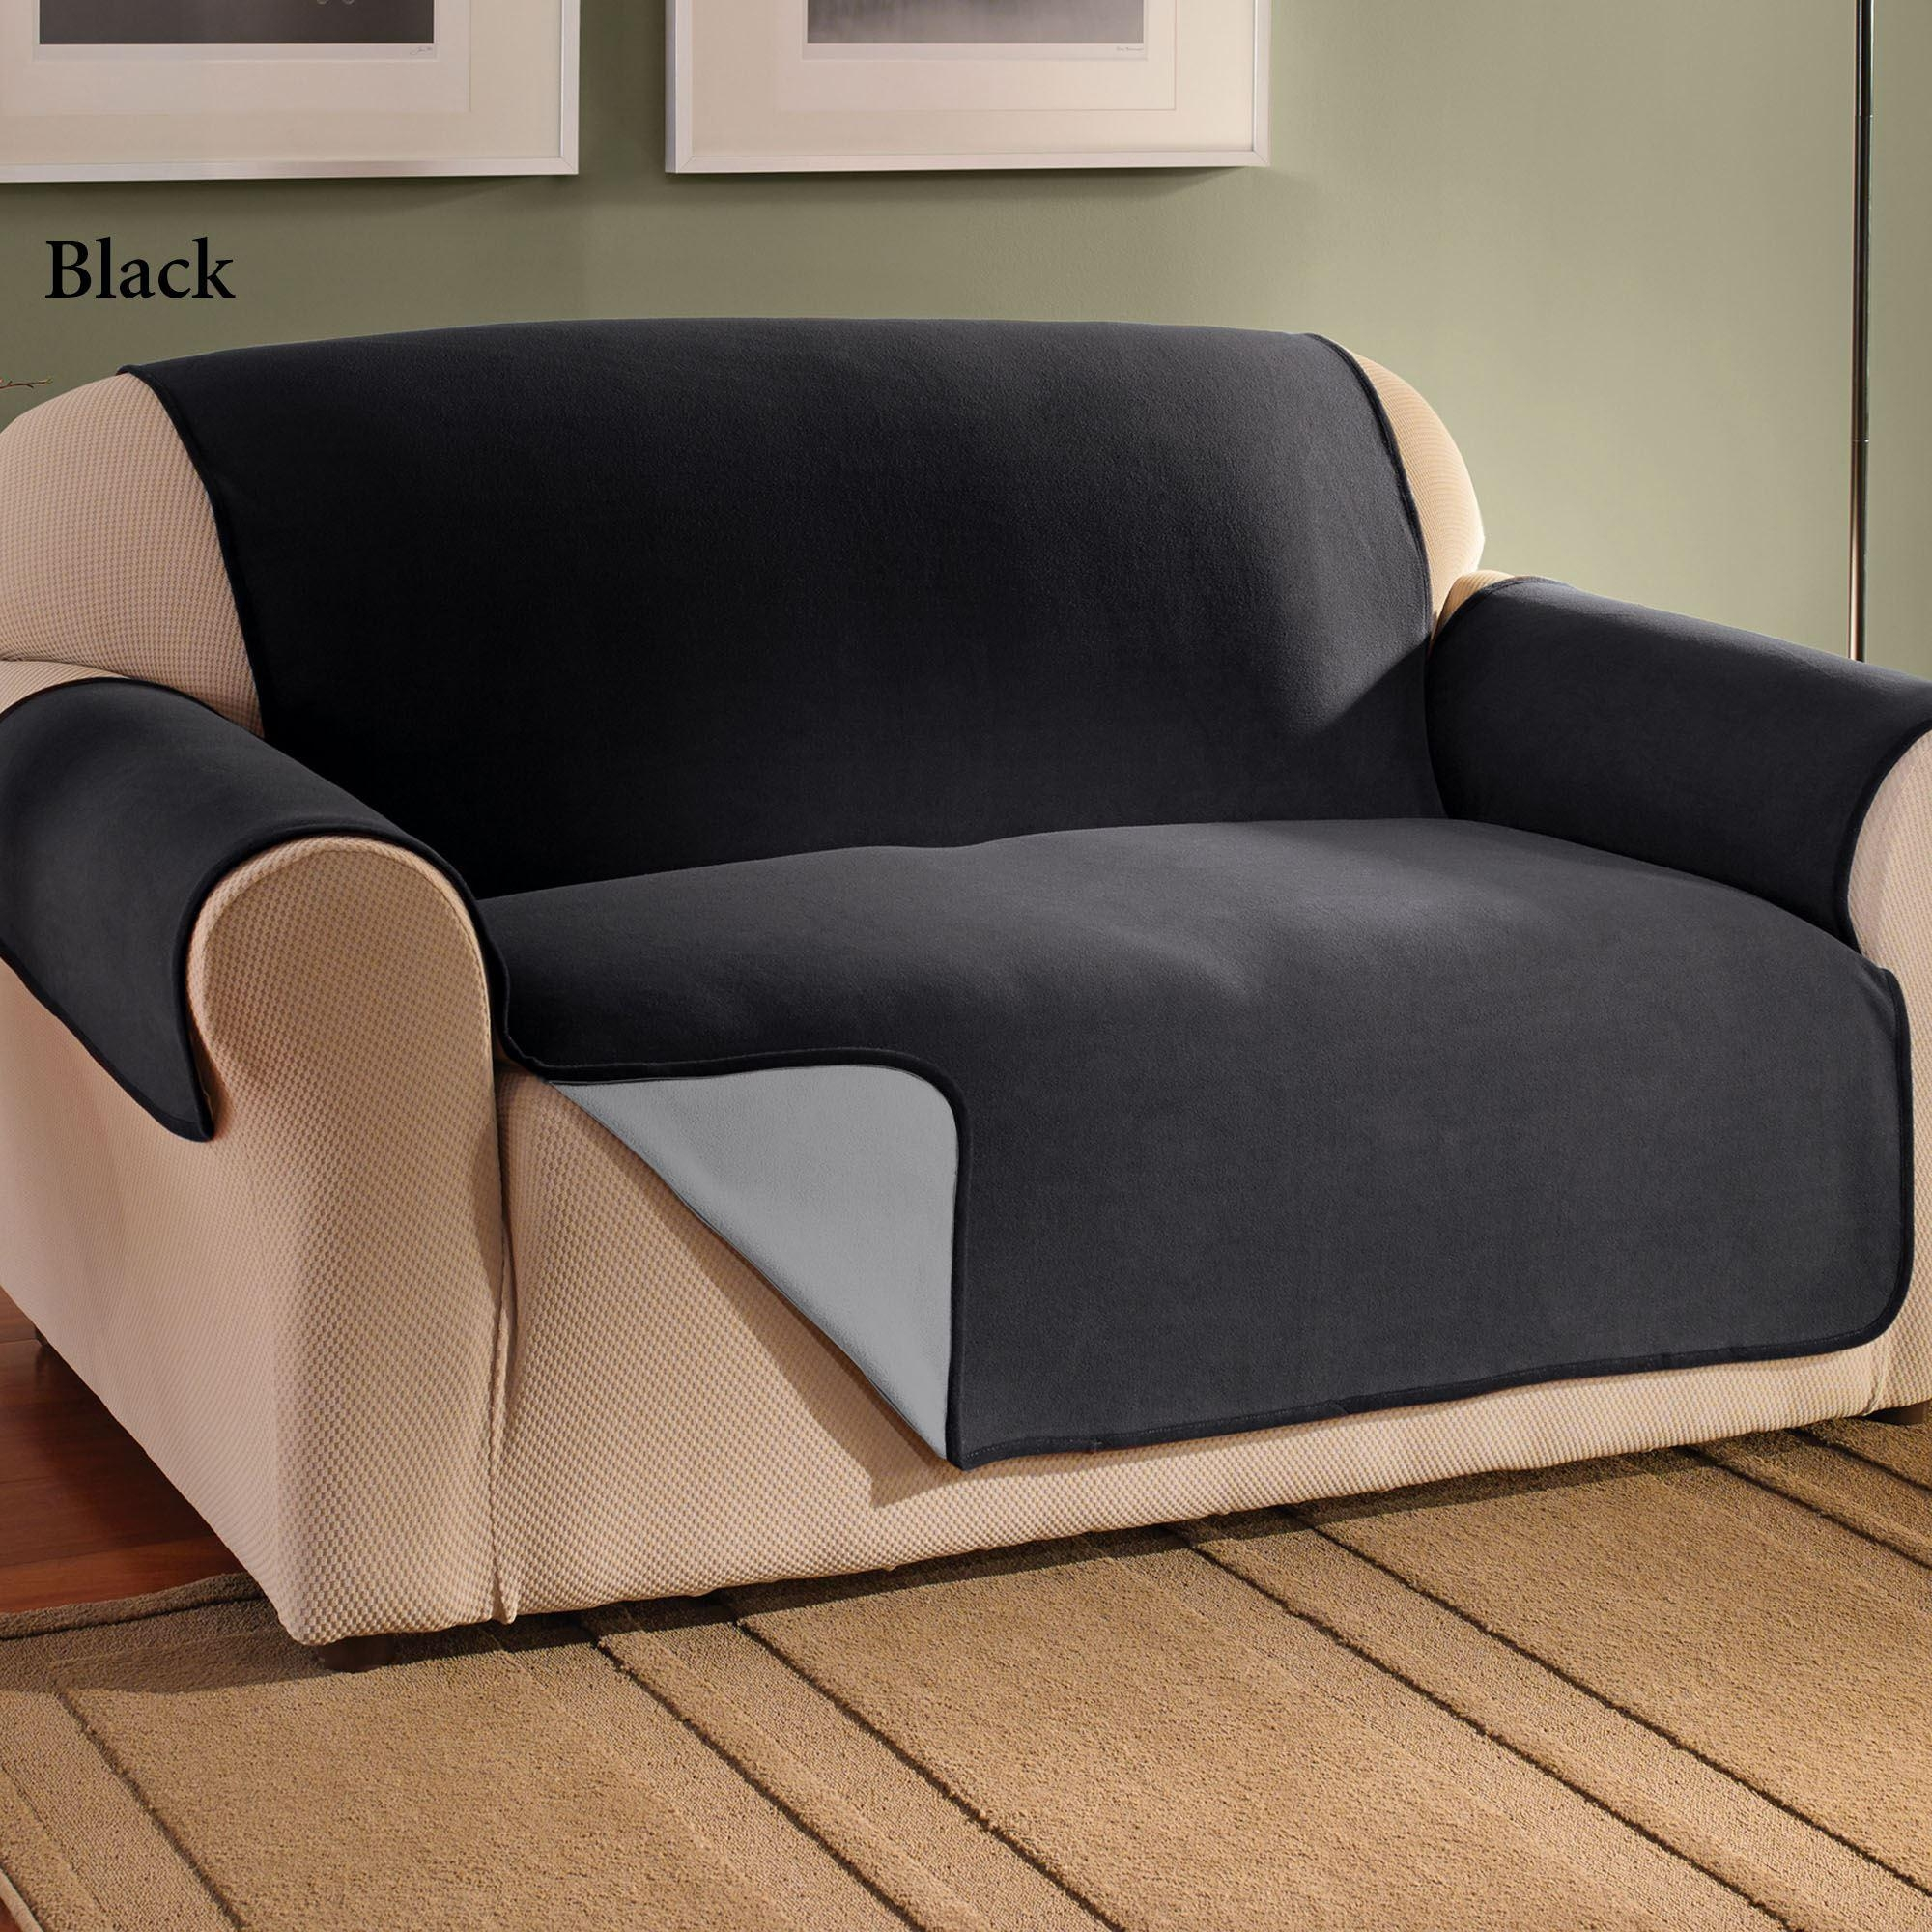 Grey Sofa Cover For Pets Throughout Black Slipcovers For Sofas (Image 13 of 20)